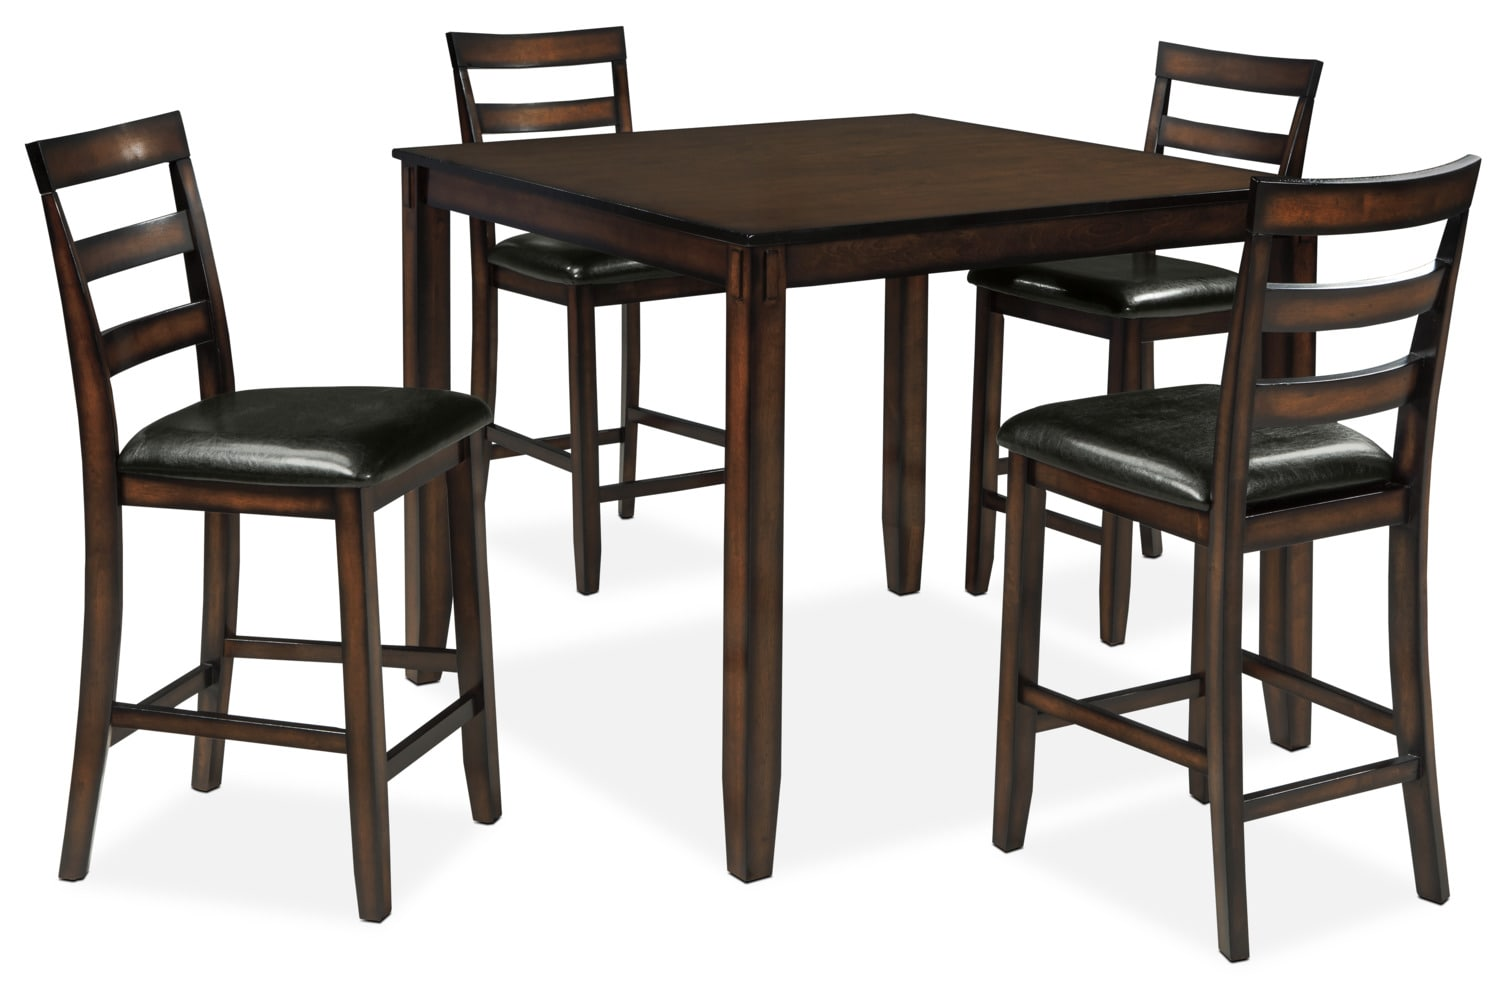 Tiba 5-Piece Counter-Height Dining Package